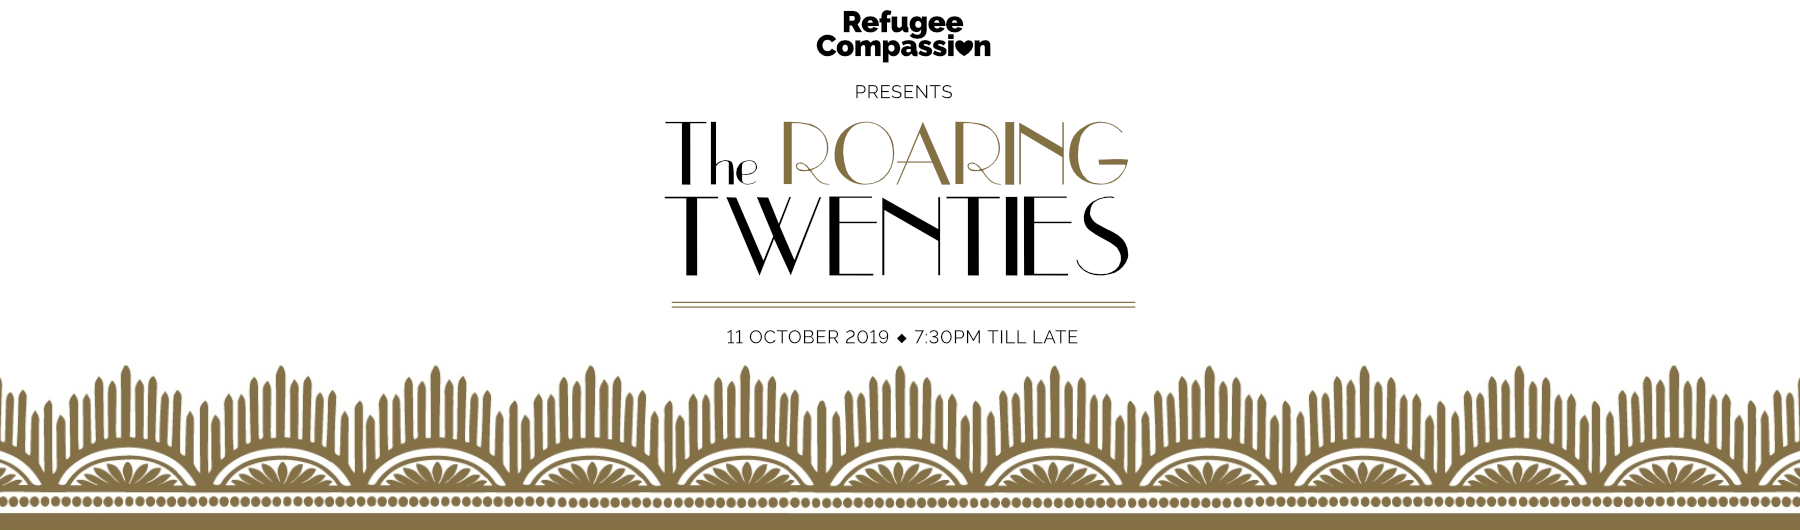 Refugee Compassion Ball 2019 'The Roaring Twenties'